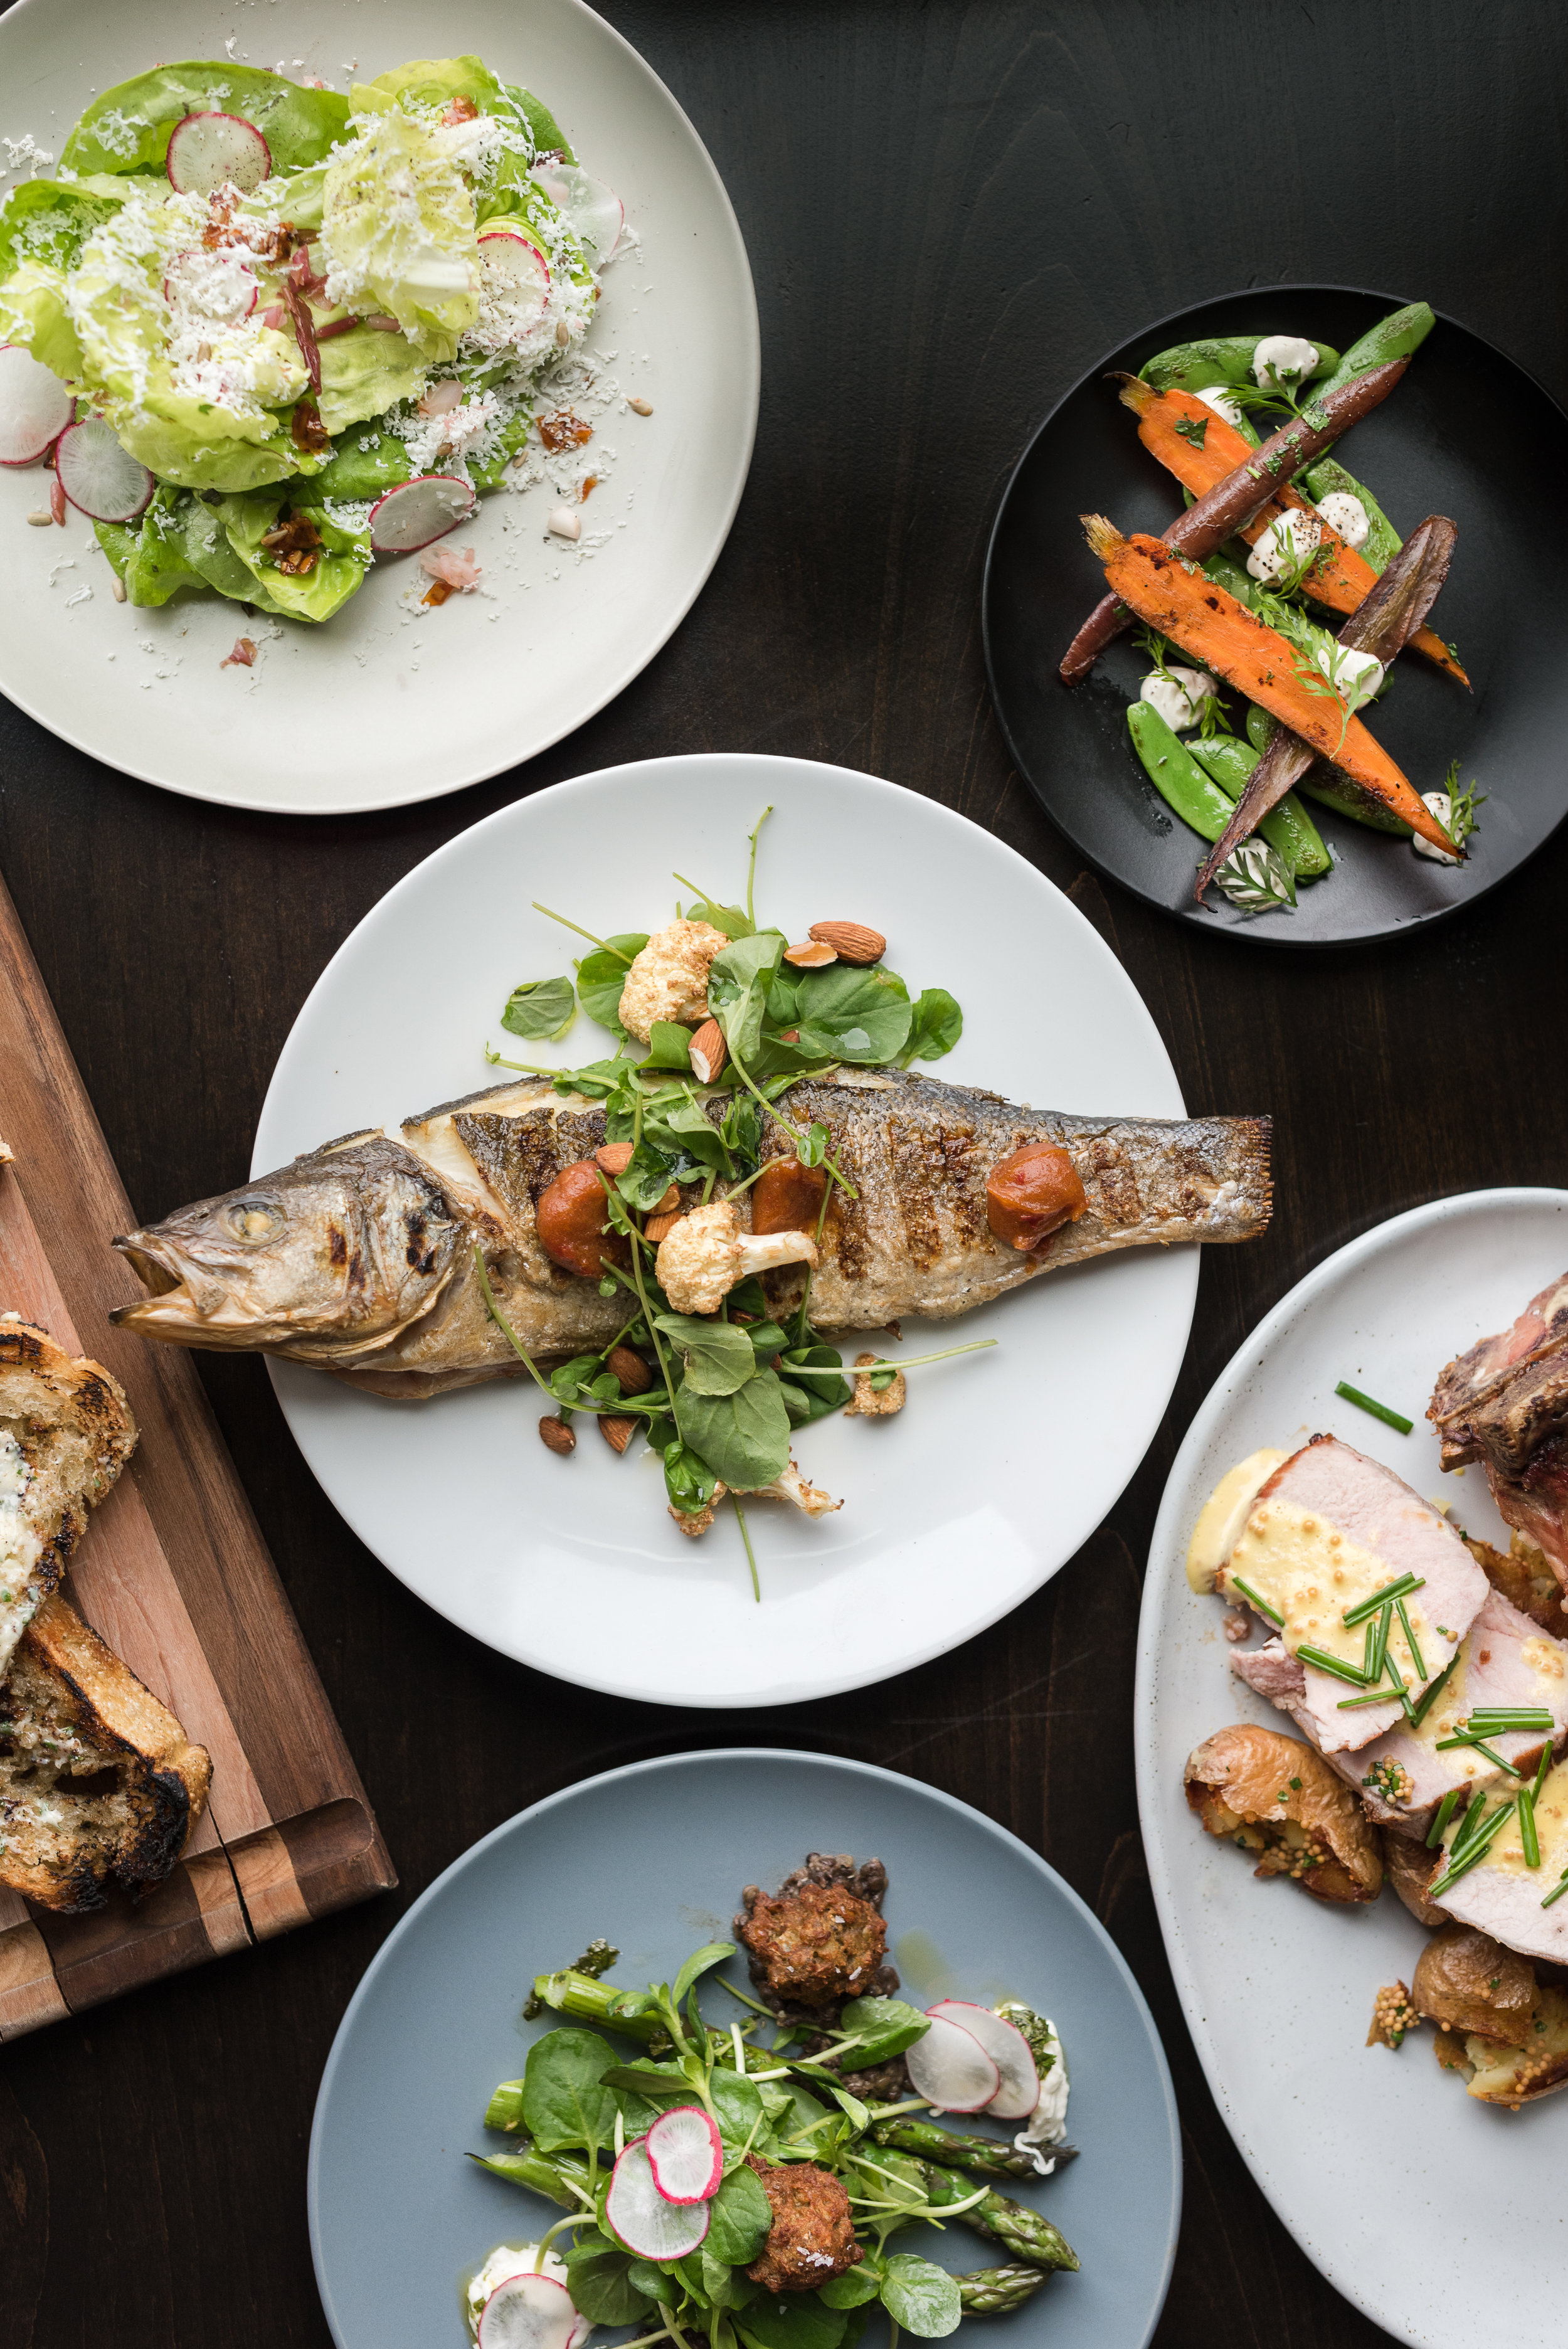 A selection of dishes from Annette's spring menu